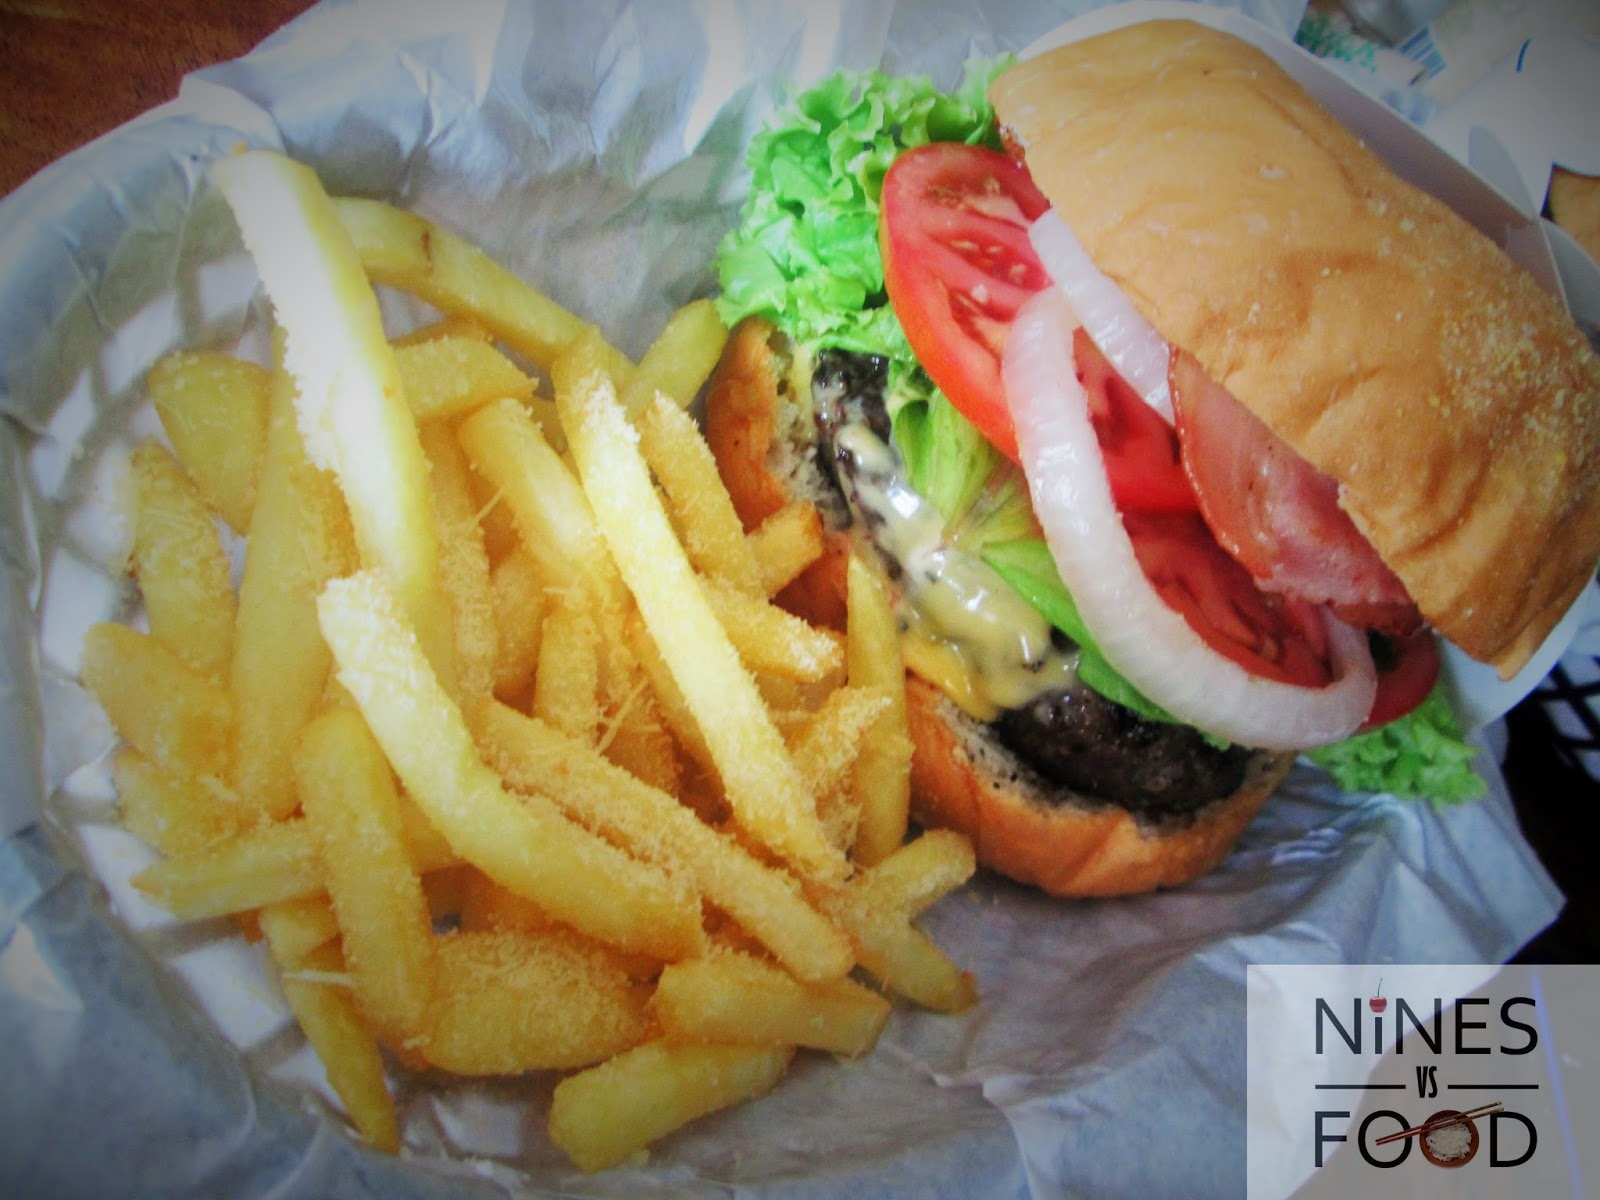 Nines vs. Food - Burger Culture Tomas Morato-8.jpg